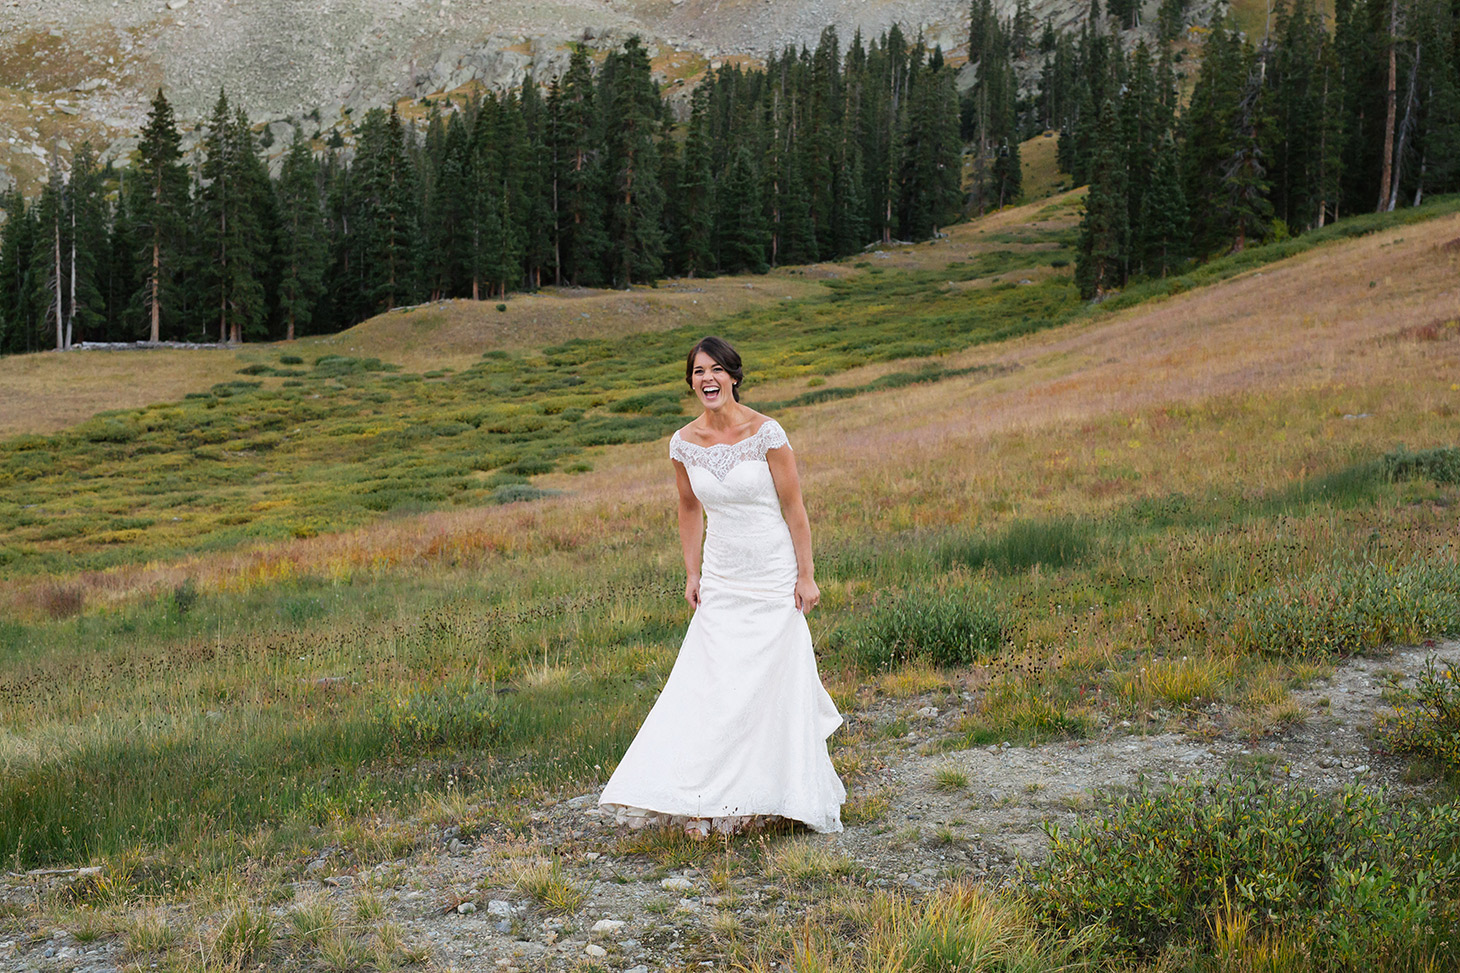 Megan-Newton-Photography-Best-Wedding-Photos-2015-284